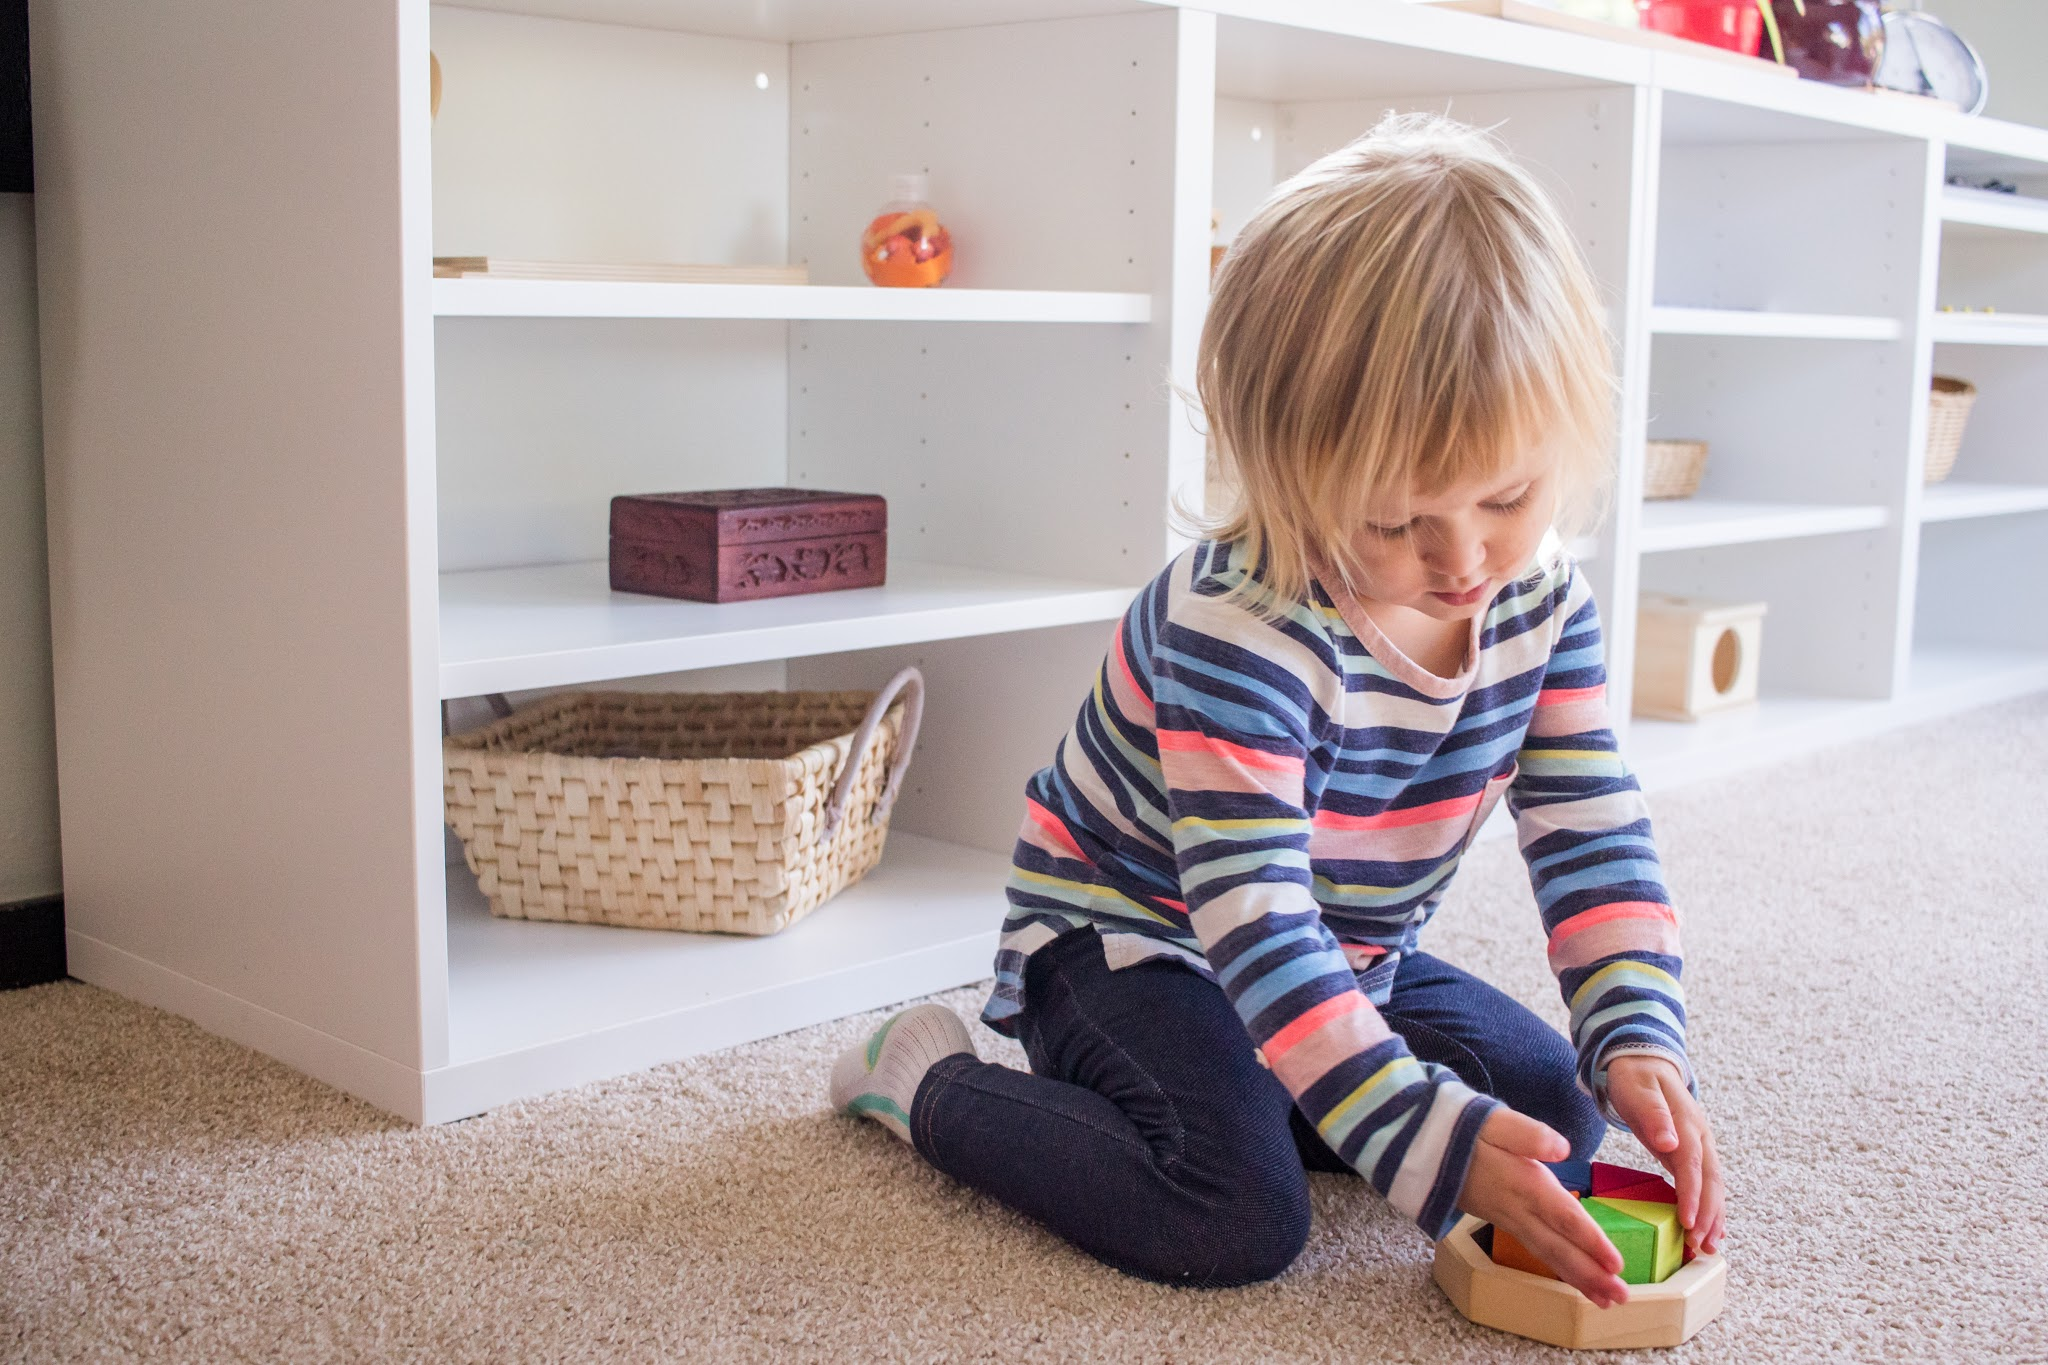 Observation is key to seeing what your child has been doing at a Montessori school.